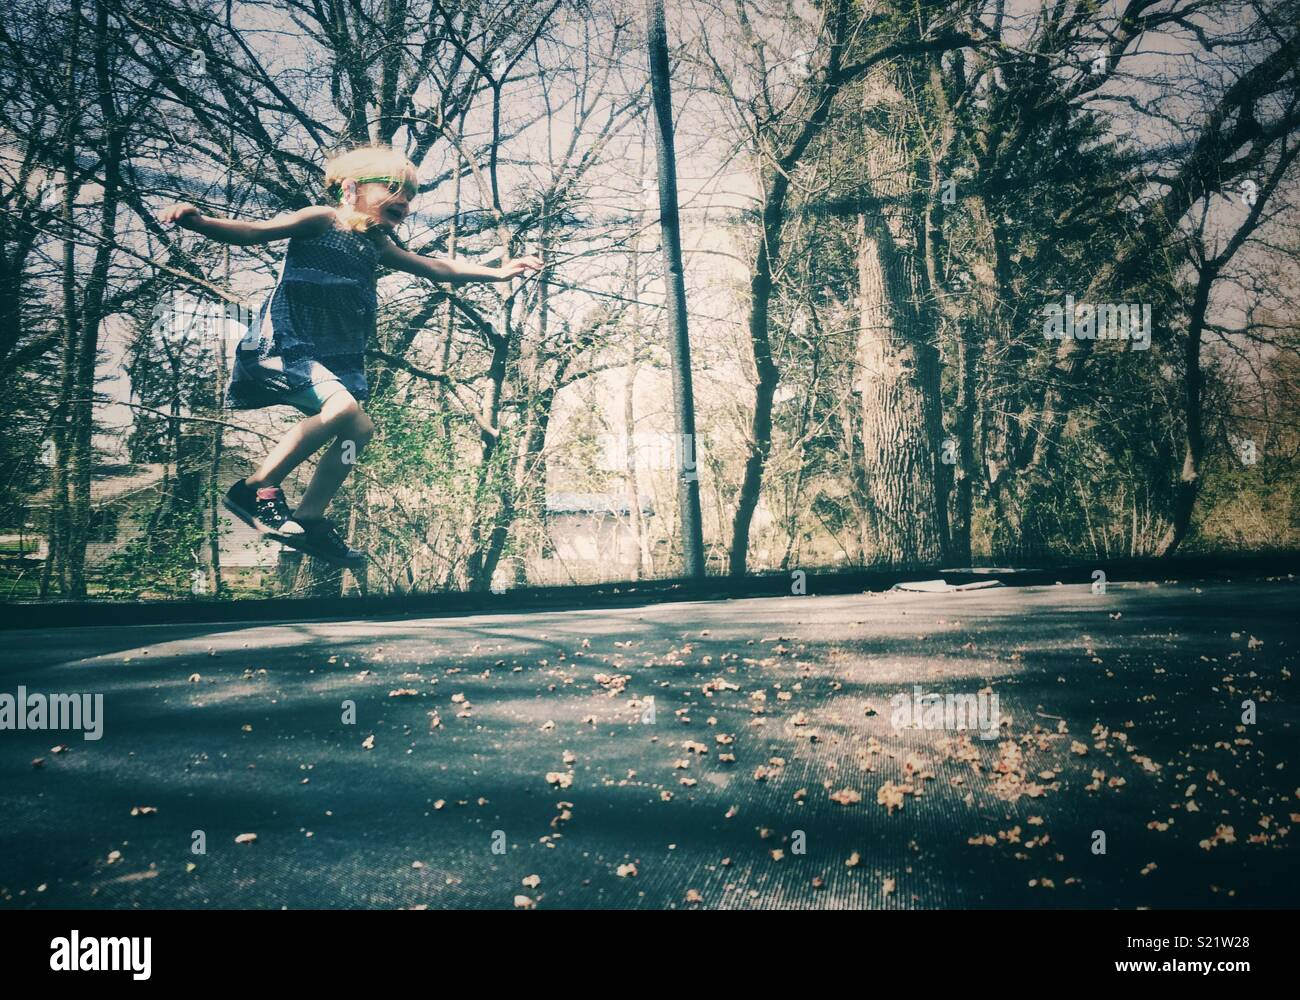 Girl bouncing on a trampoline - Stock Image